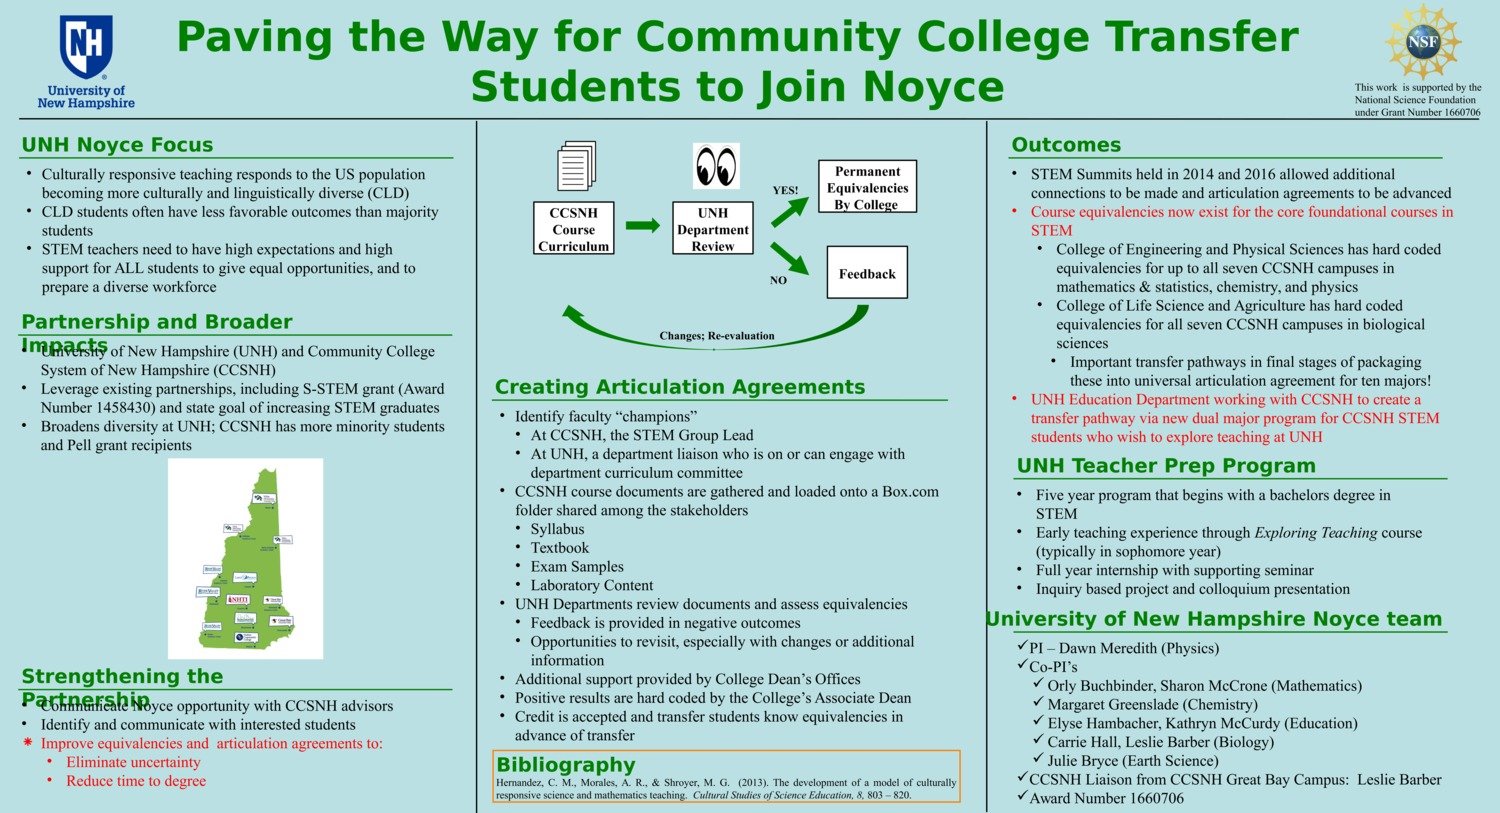 Paving The Way For Community College Transfer Students To Join Noyce by mgreenslade